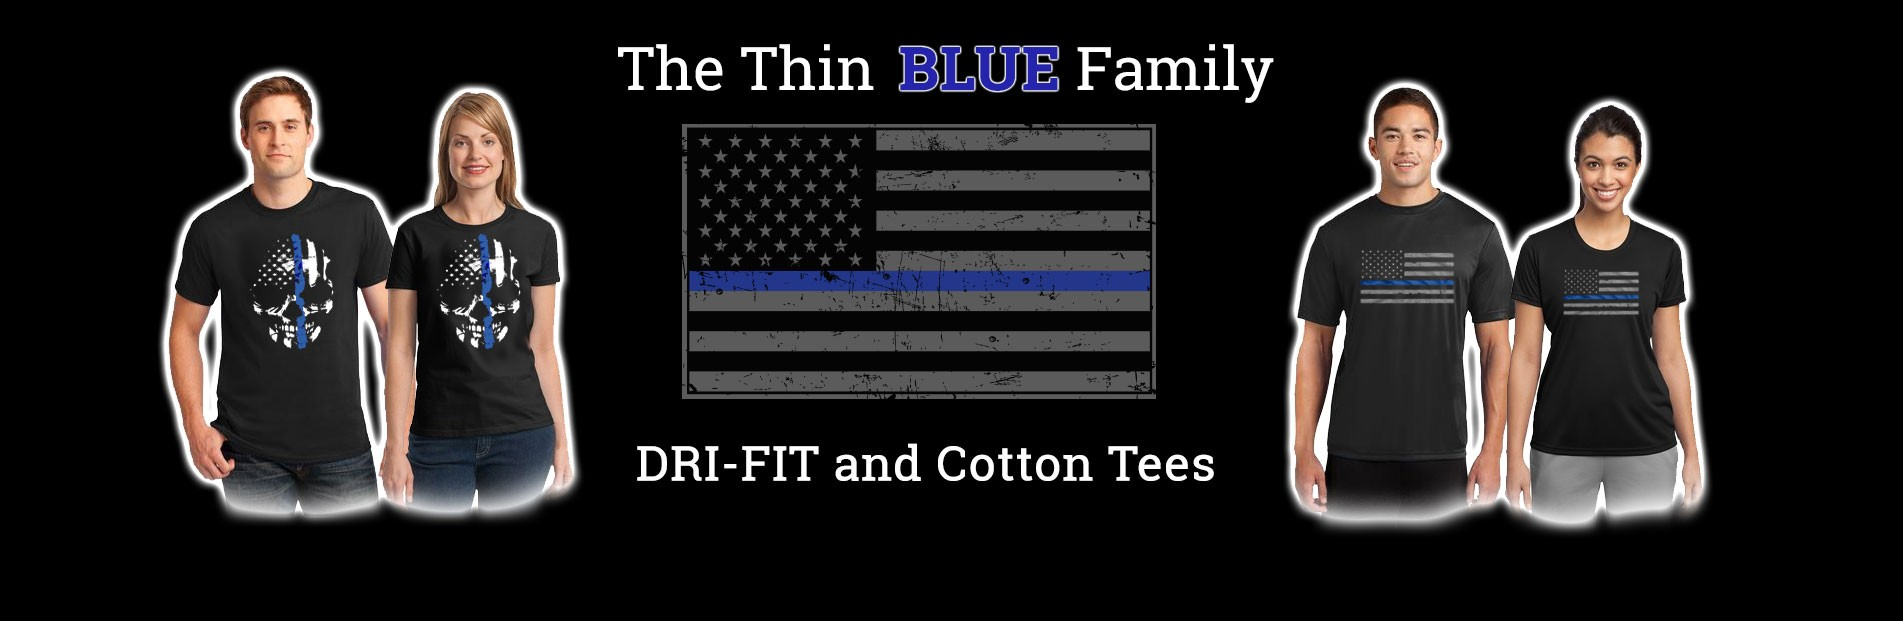 Thin Blue Line Family T-Shirts